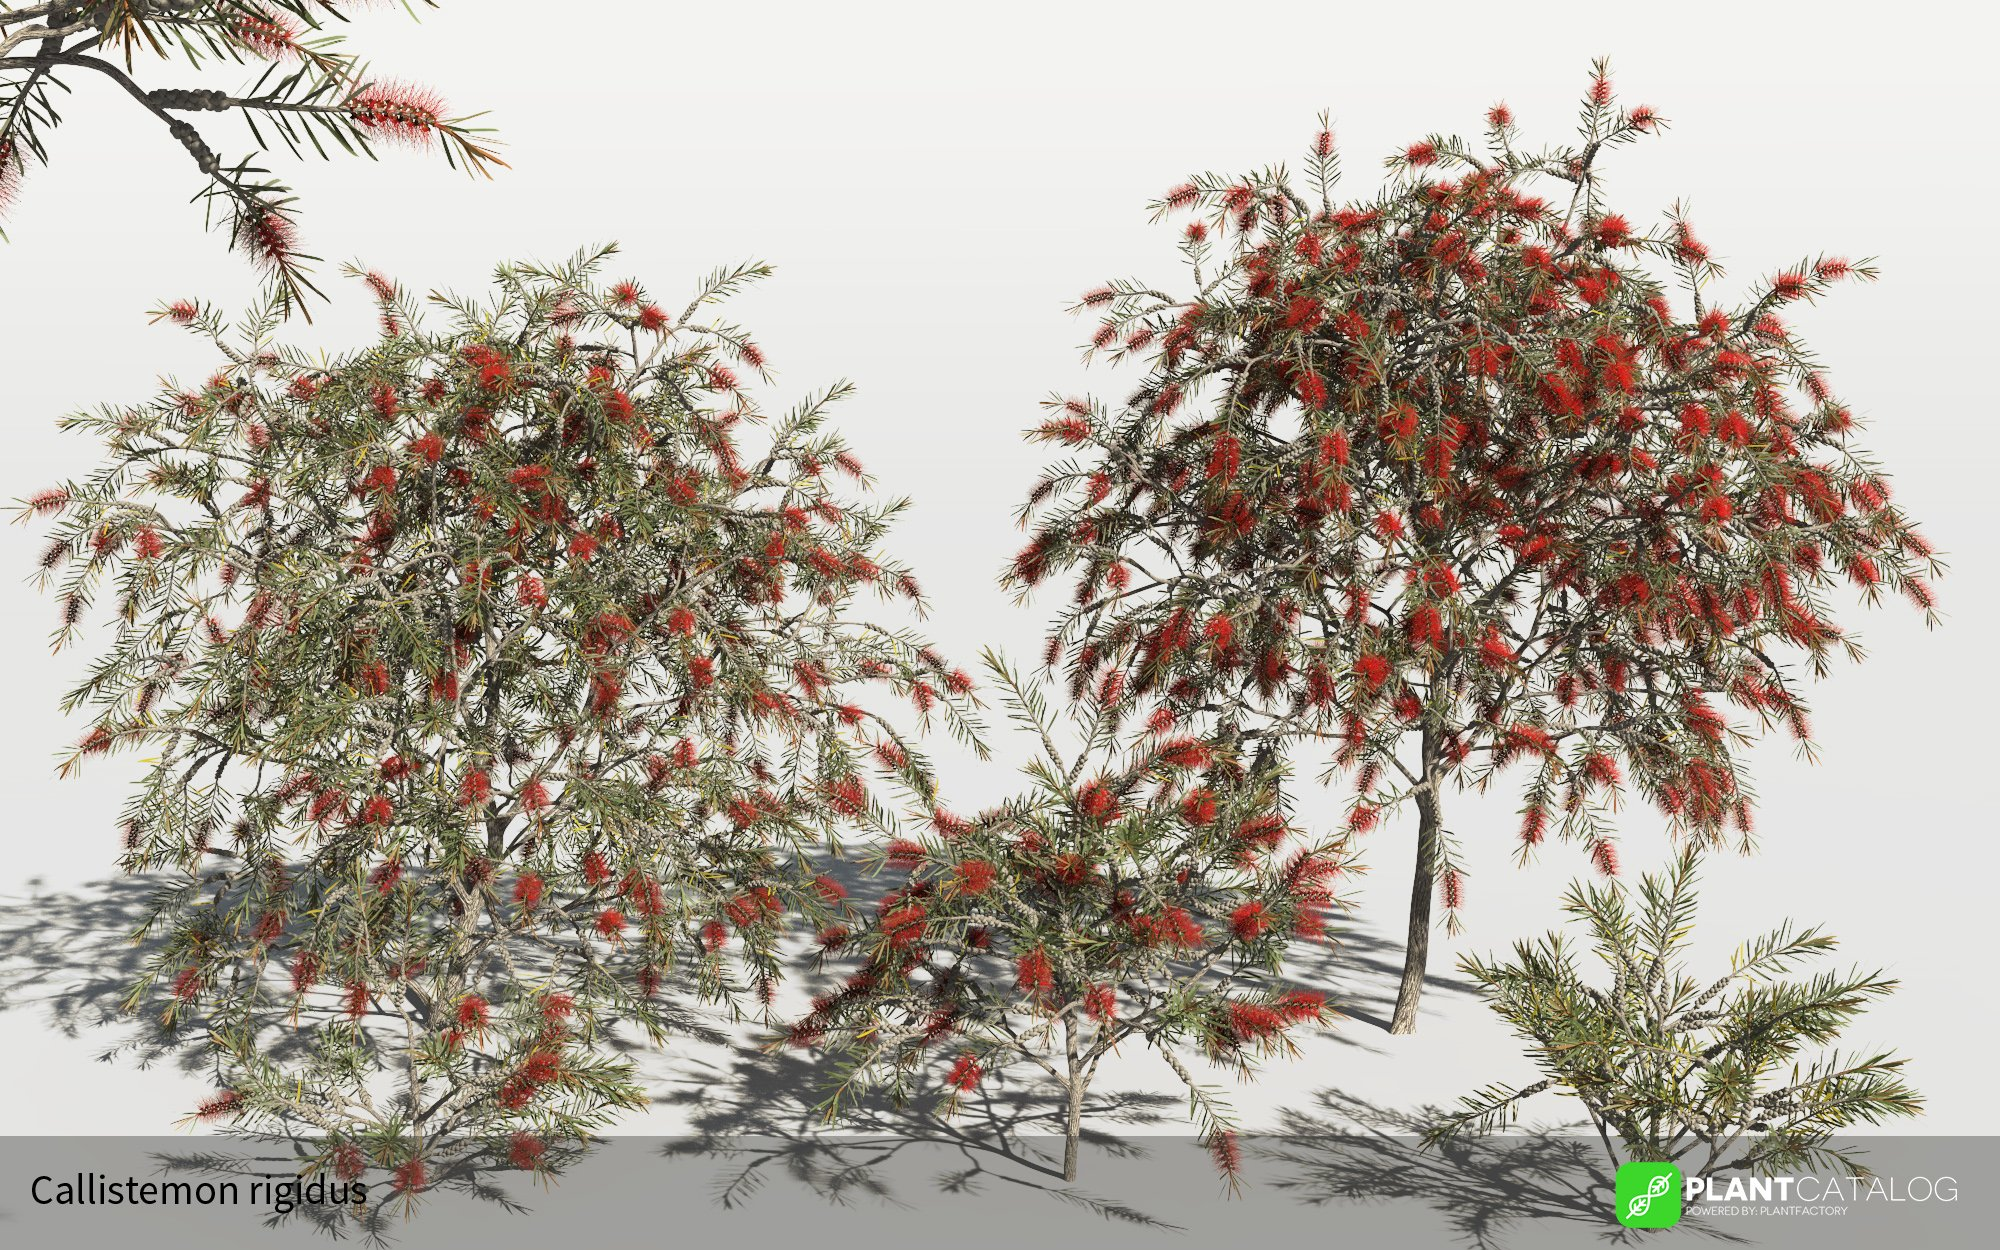 3D model of the Bottlebrush - Callistemon rigidus - from the PlantCatalog, rendered in VUE